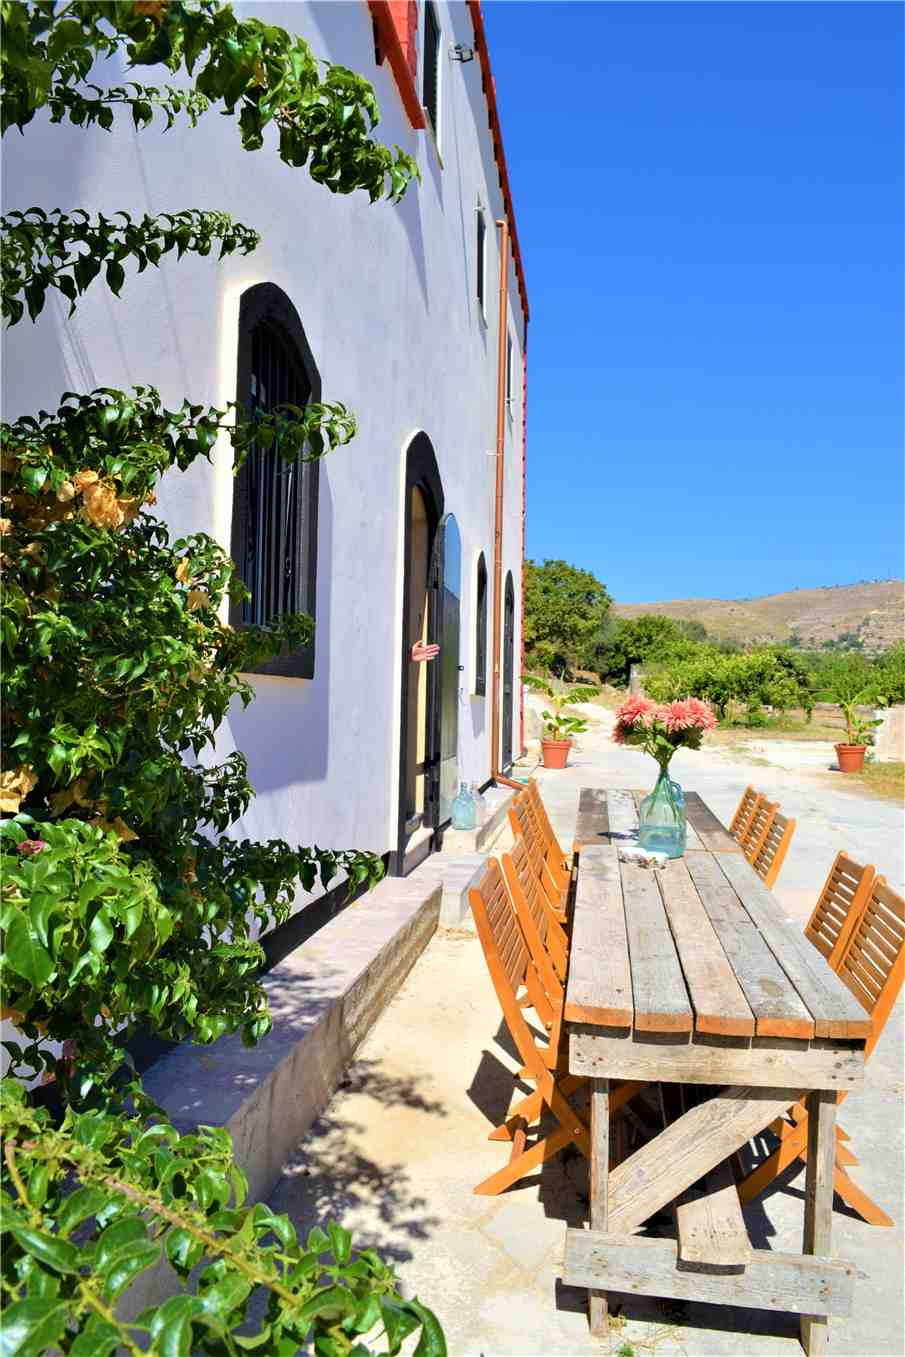 To rent Detached house Avola  #A7A n.4